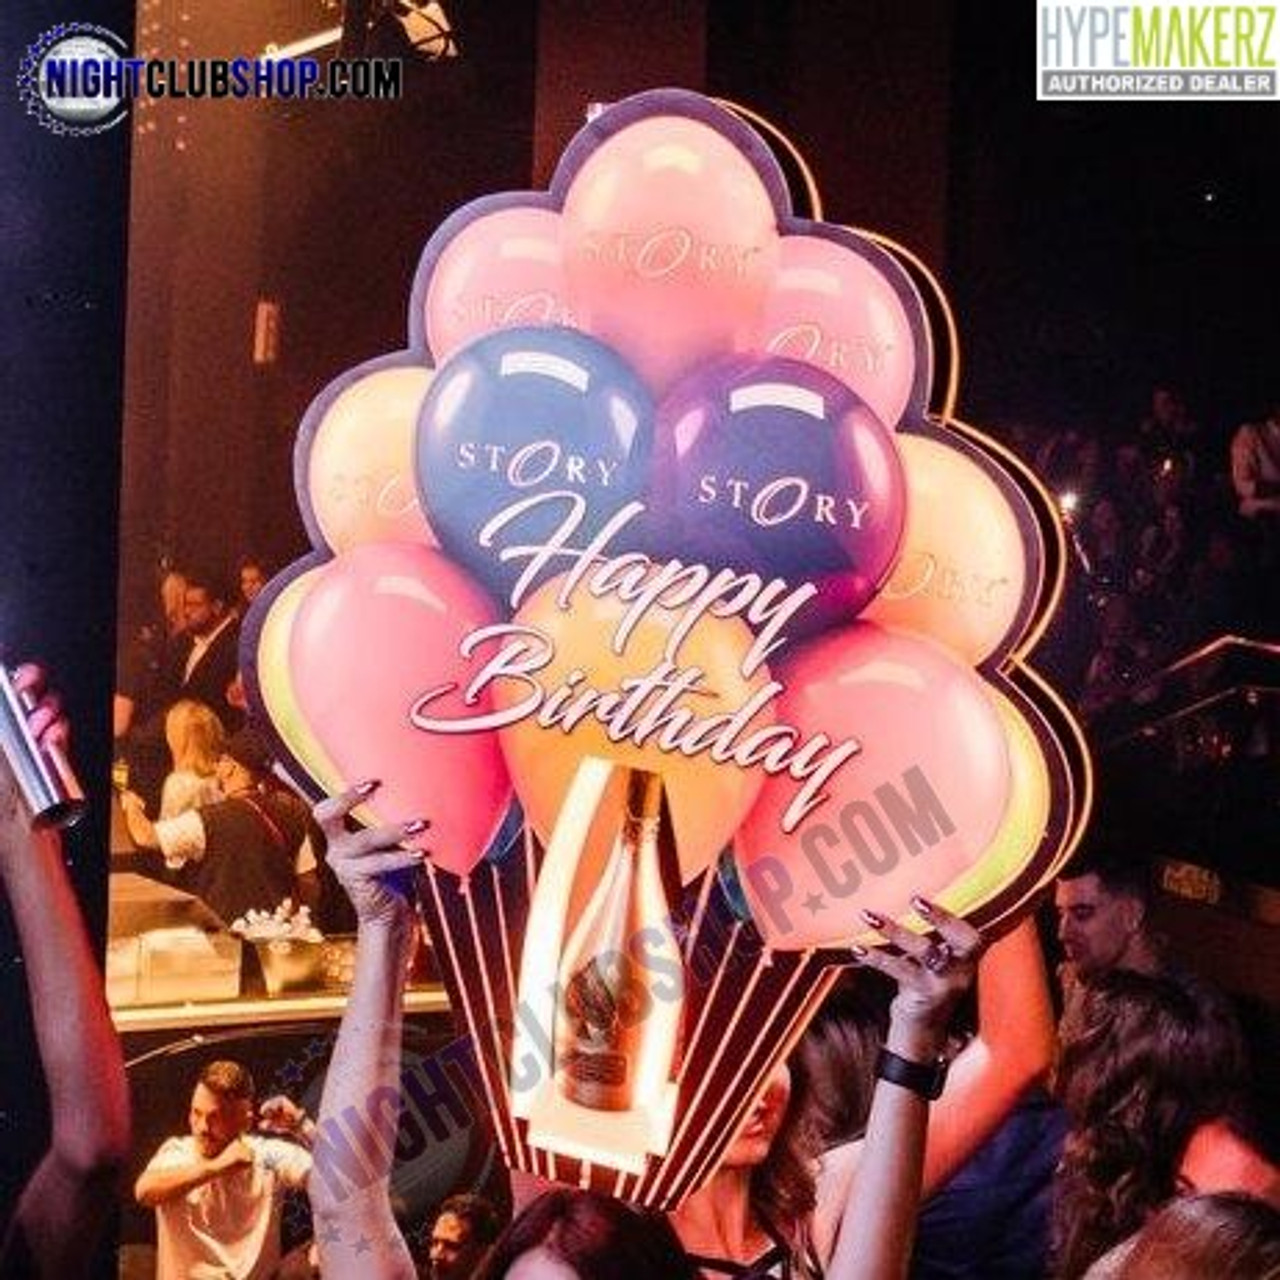 Happy Birthday, B-Day, Liquor, Holder, Bottle Presenter, LED, Balloon, Huge, Grande, VIP, Nightclub, venue, Bar, Casino, Restaurant